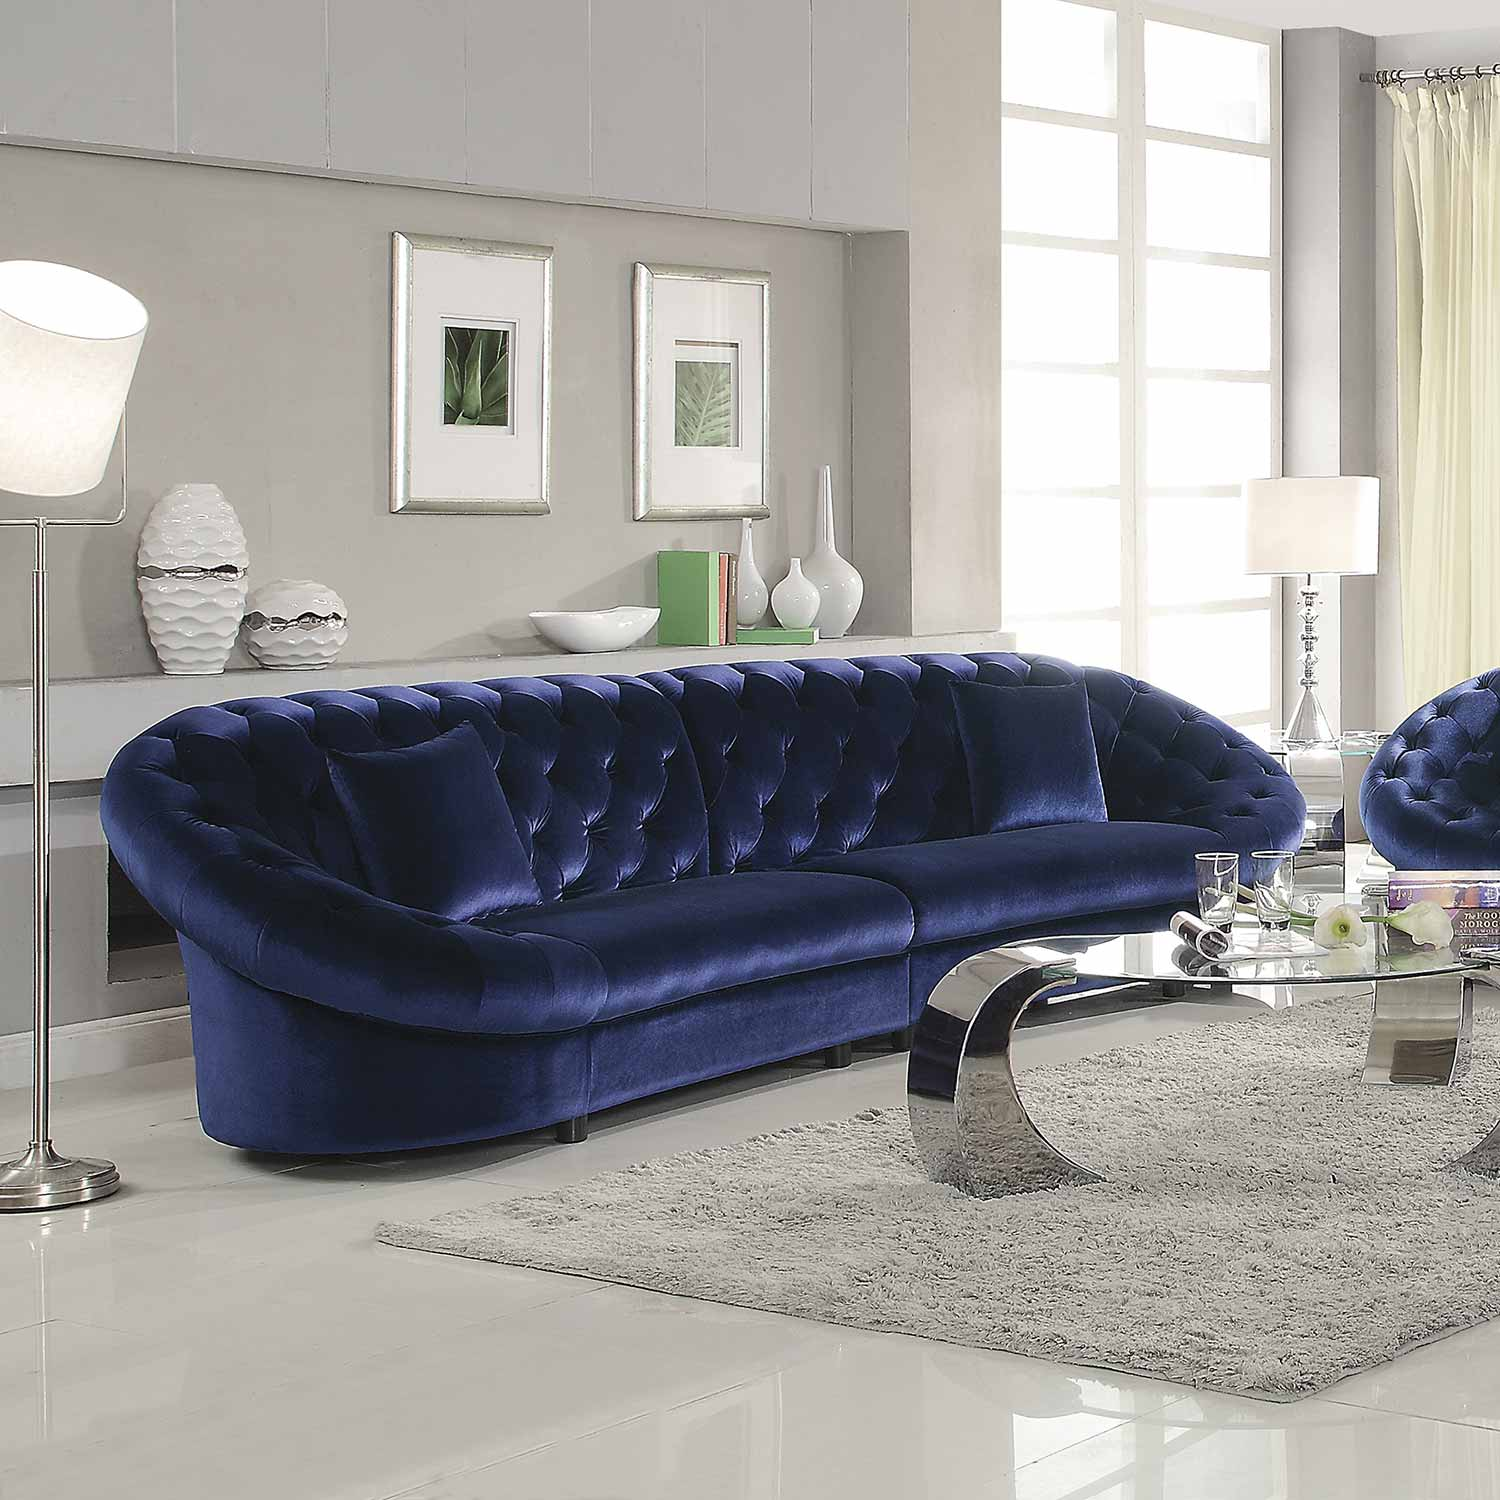 Coaster Romanus Sectional Sofa Royal Blue at Homelement